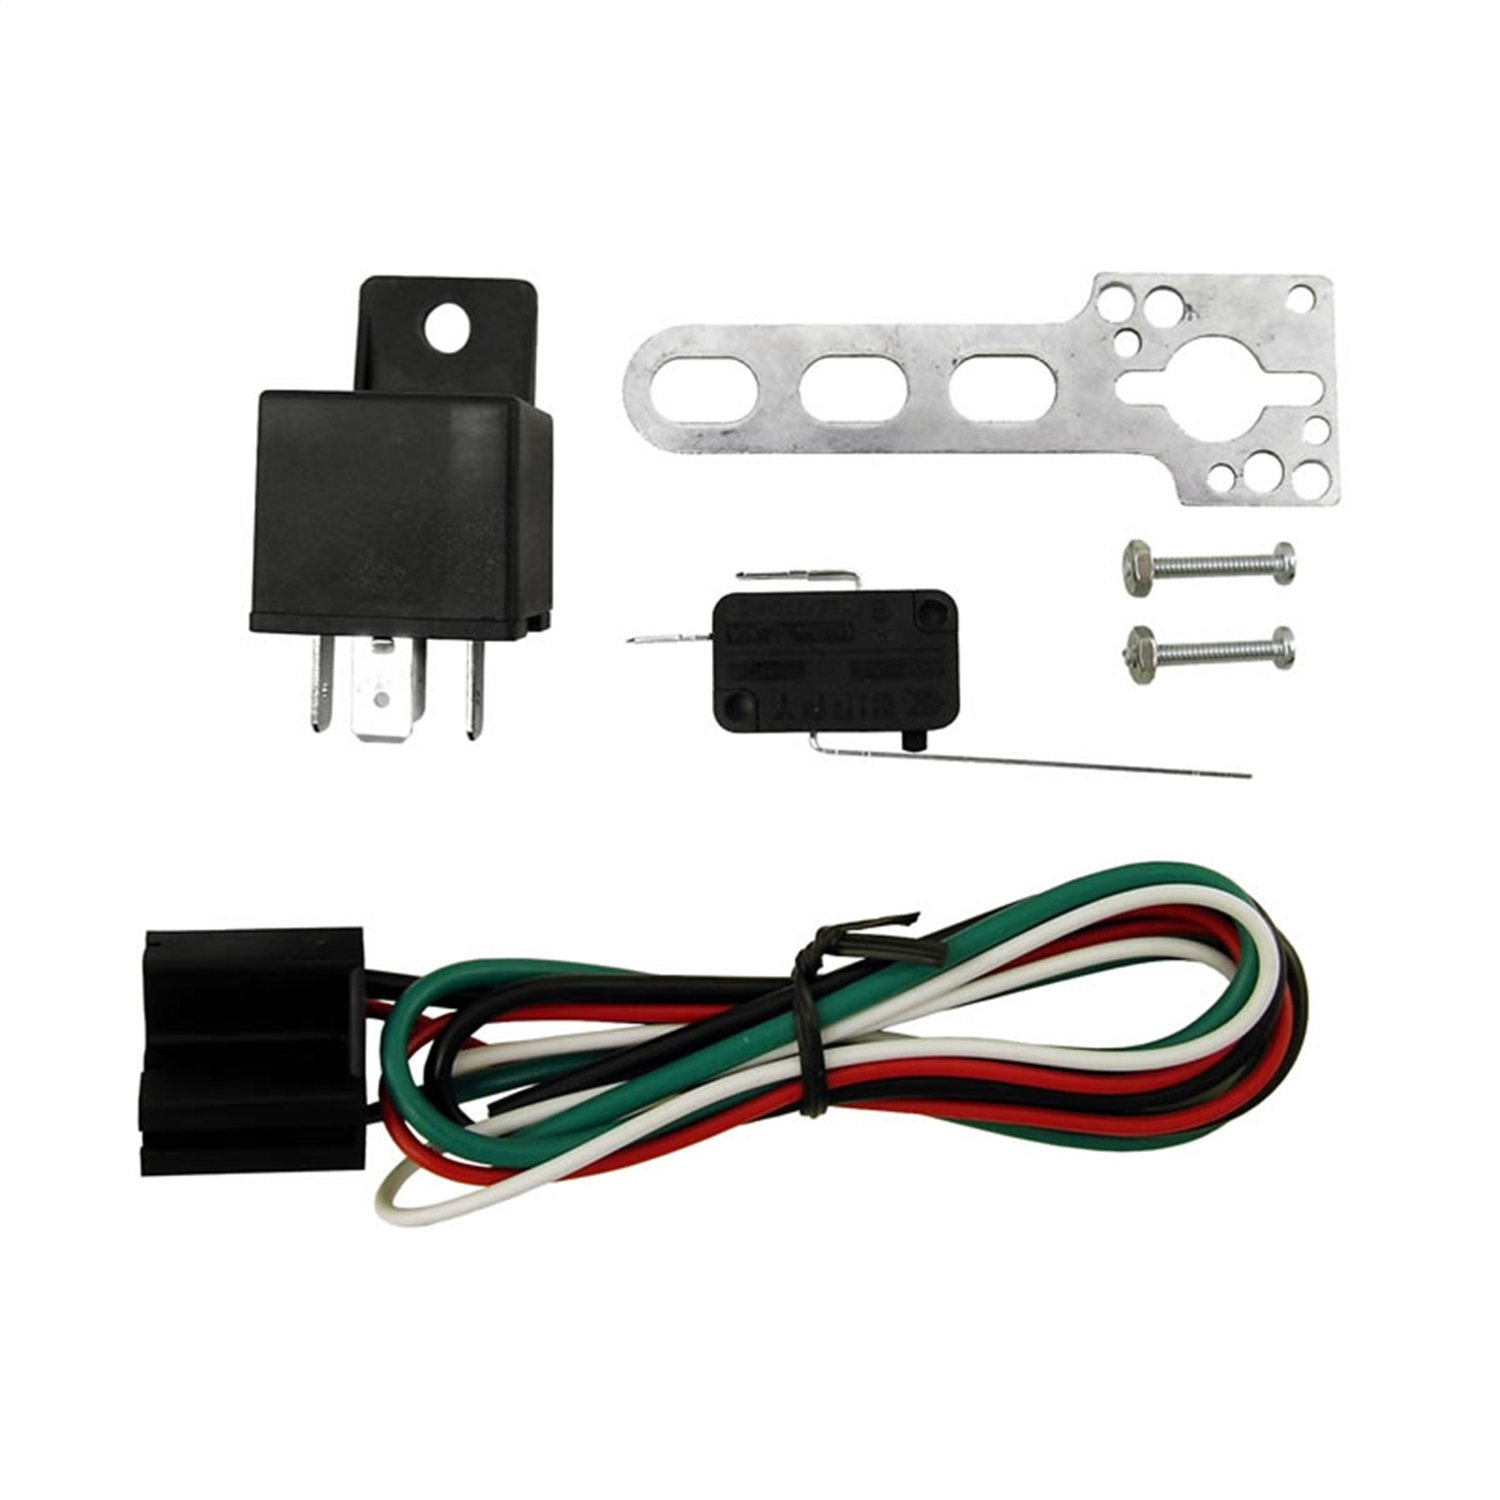 Nitrous Express 15504 Wide Open Throttle Nitrous Control Switch with 40 Amp 4 Pin Relay and Harness by Nitrous Express